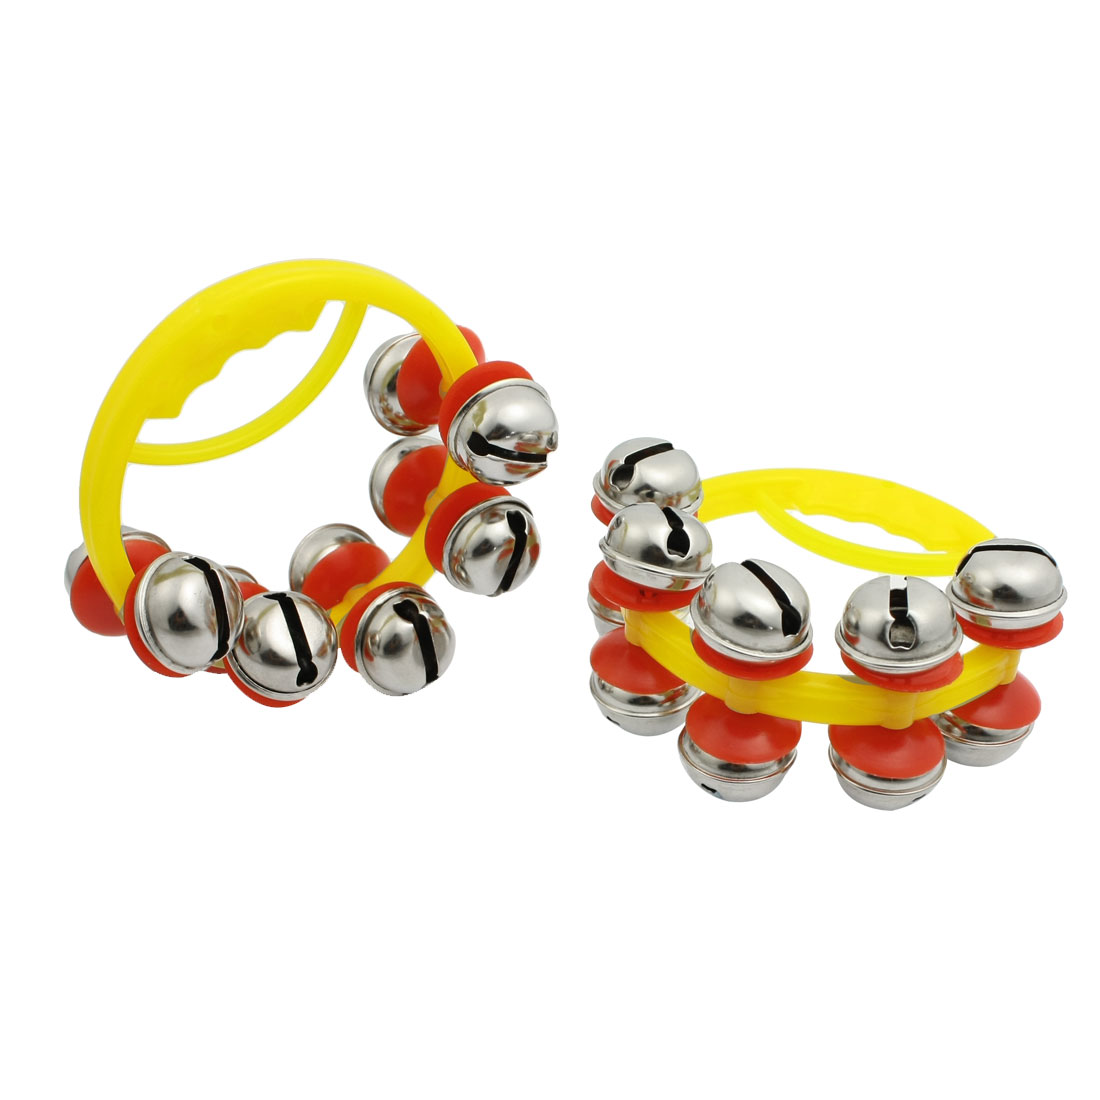 Pair Xmas Festive Handheld Musical Tambourine Jingling Bells Toy for Child